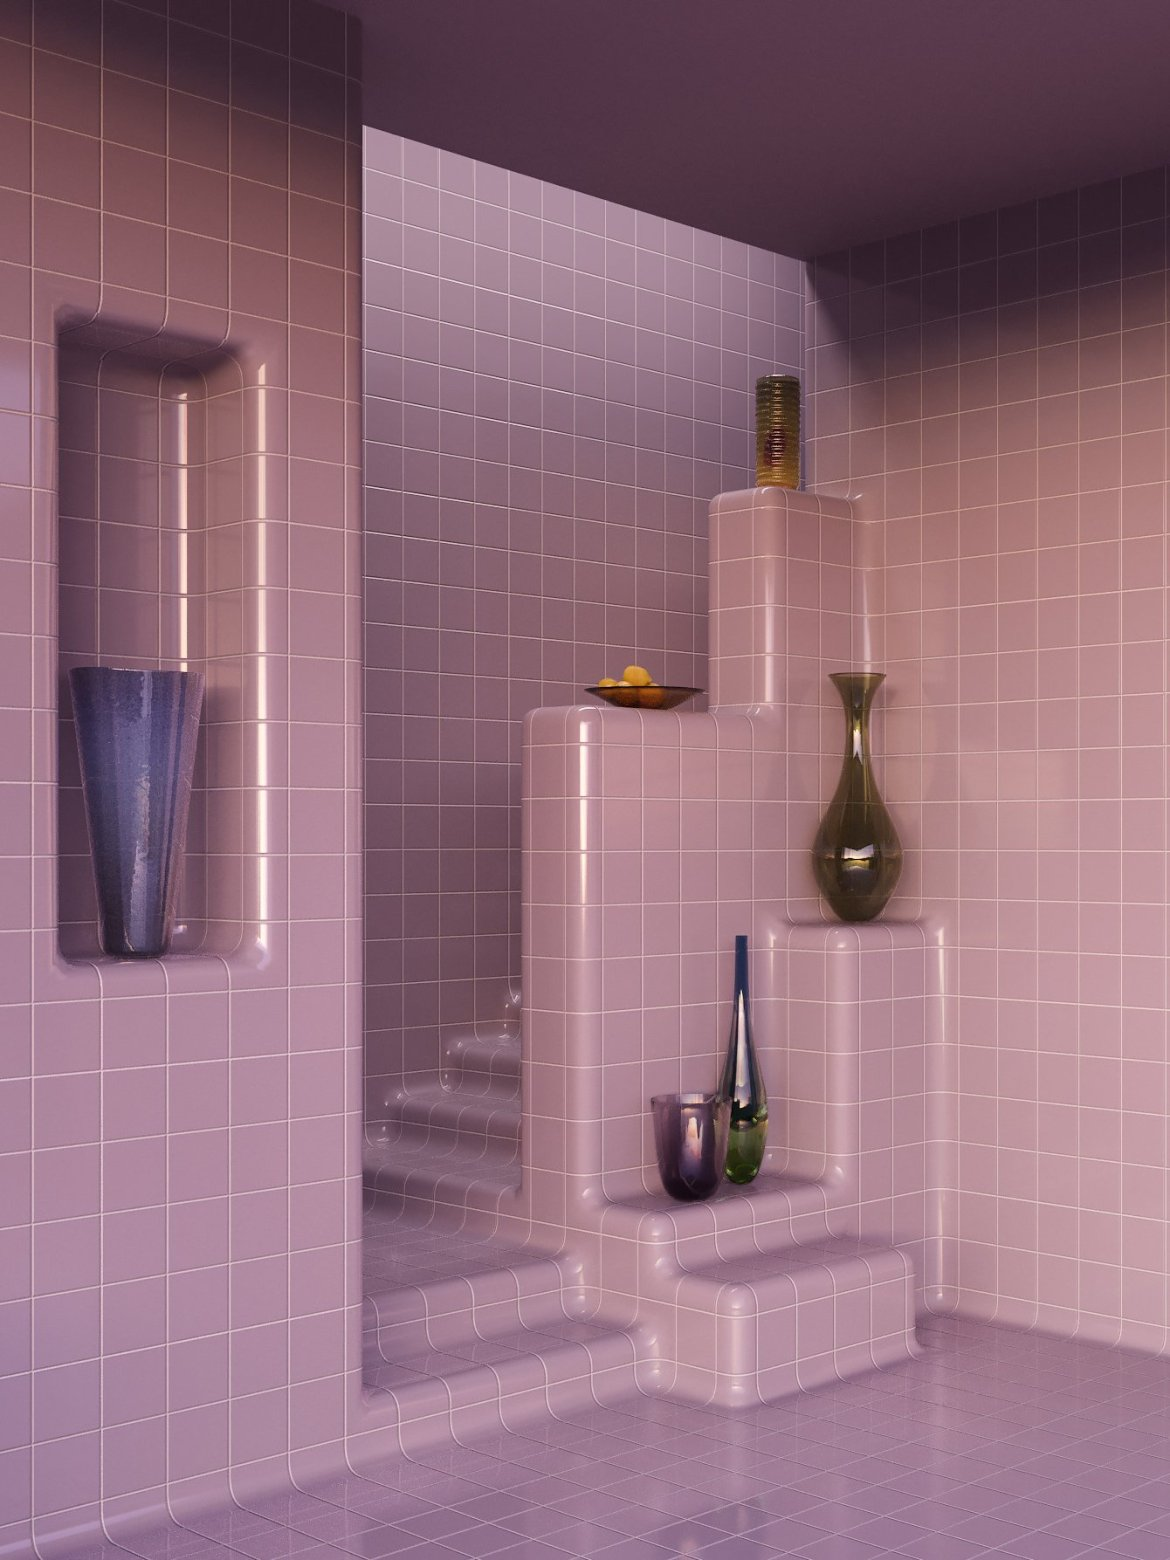 Charlotte Taylor and Hannes Lippert, virtual Tiled House